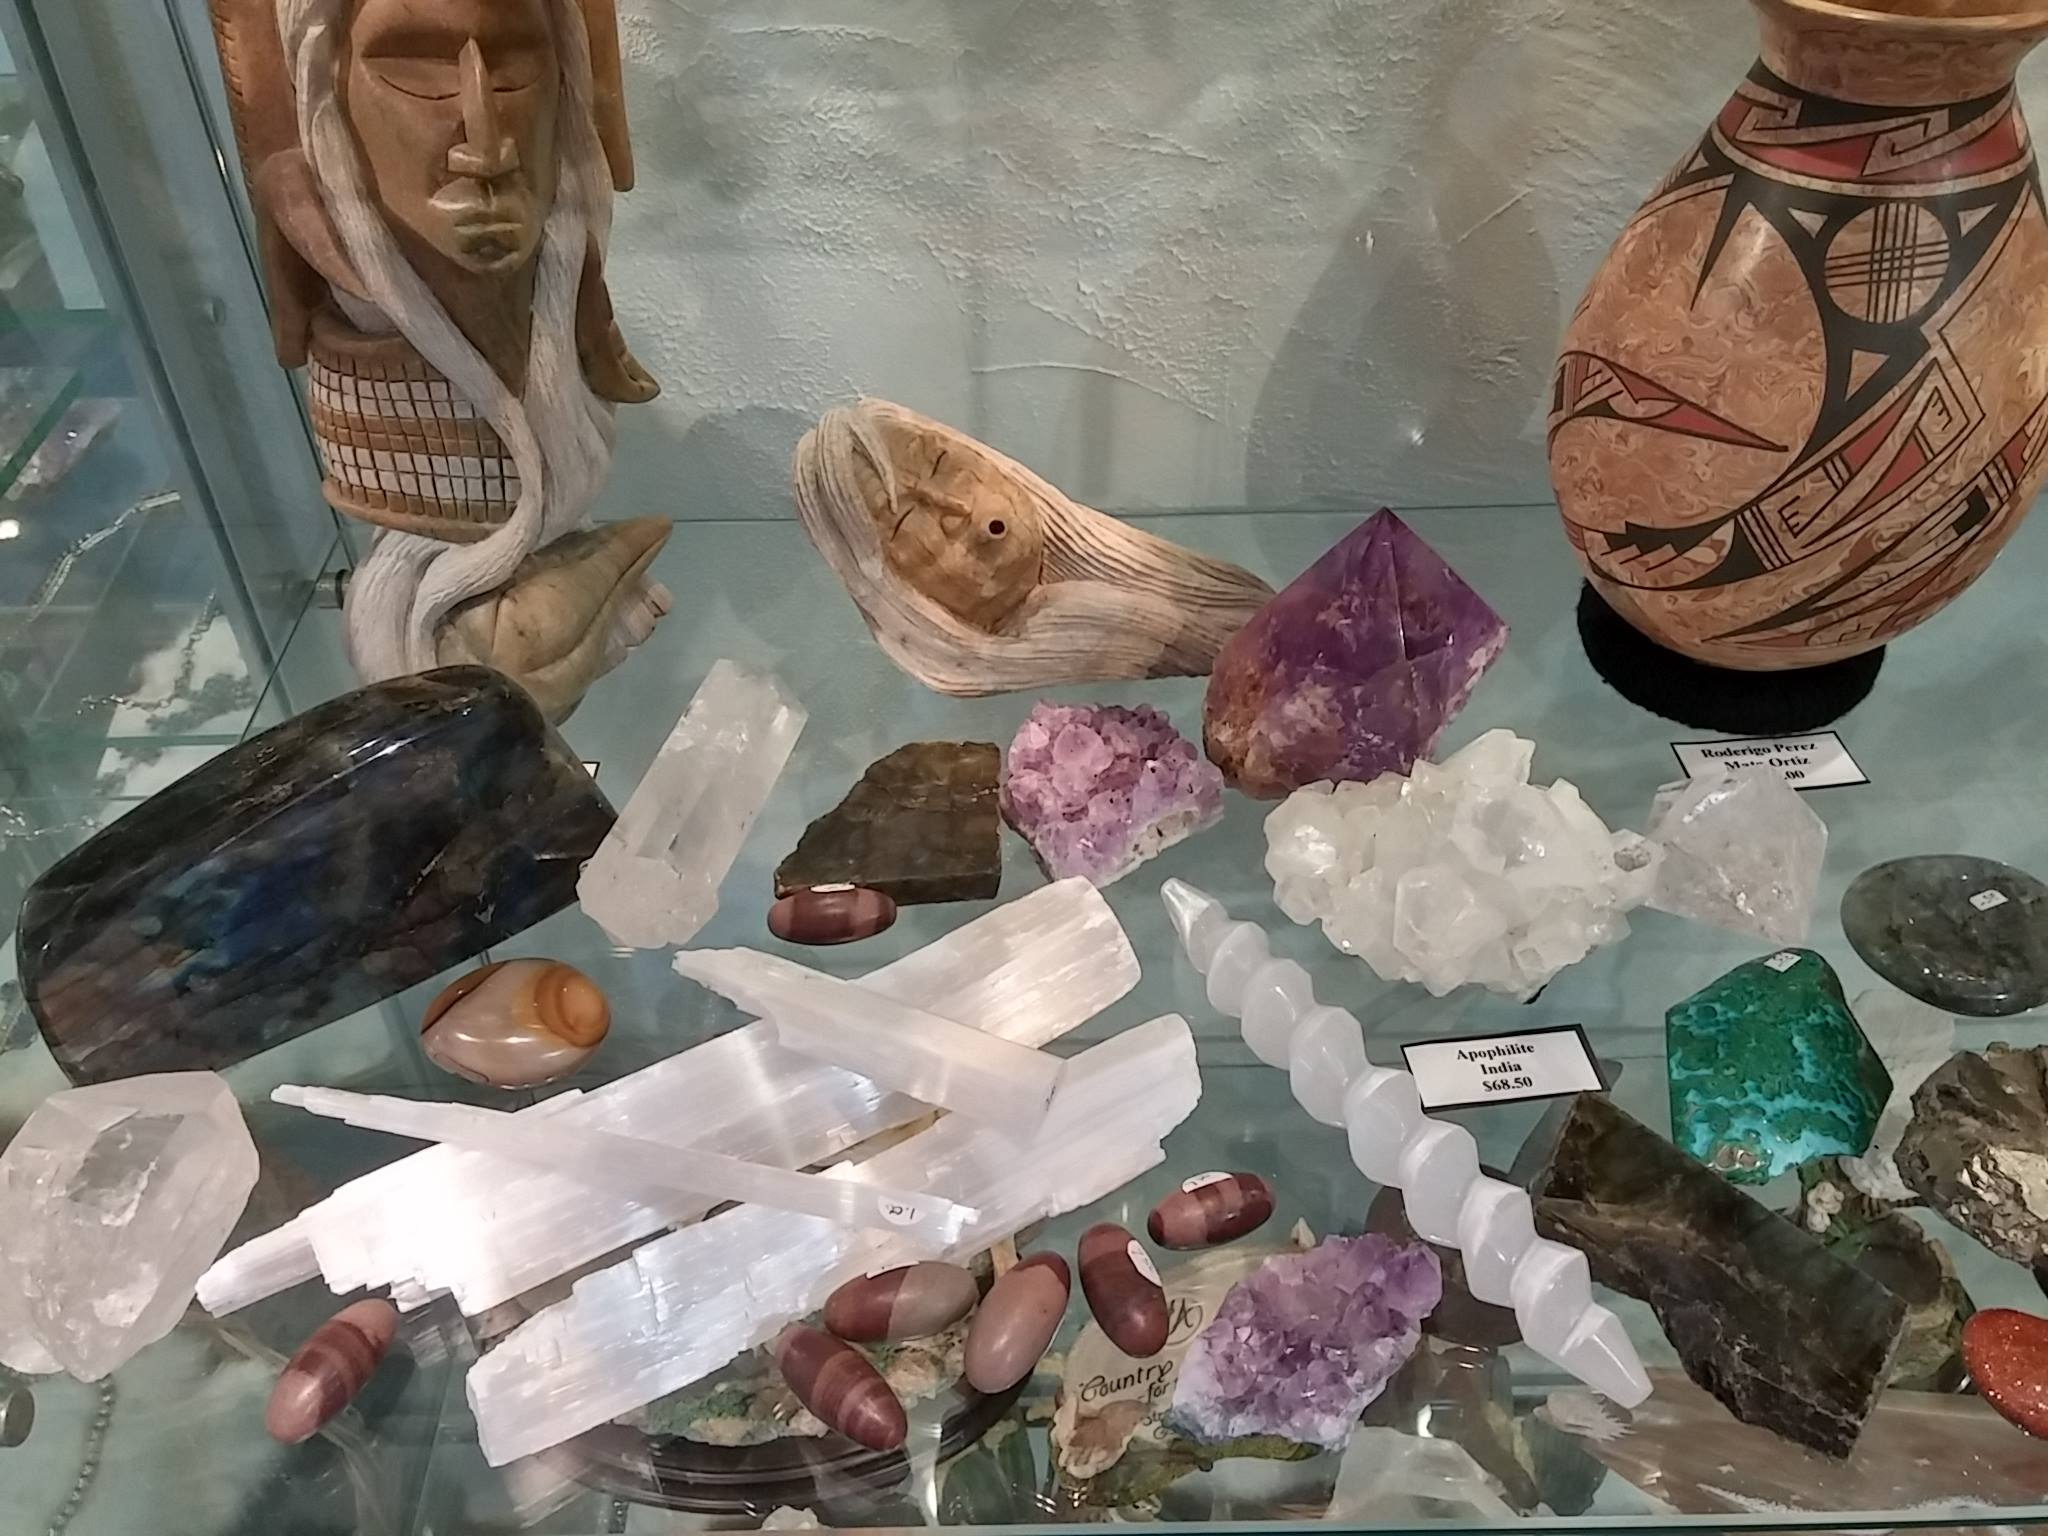 A collection of stones and rock formations.